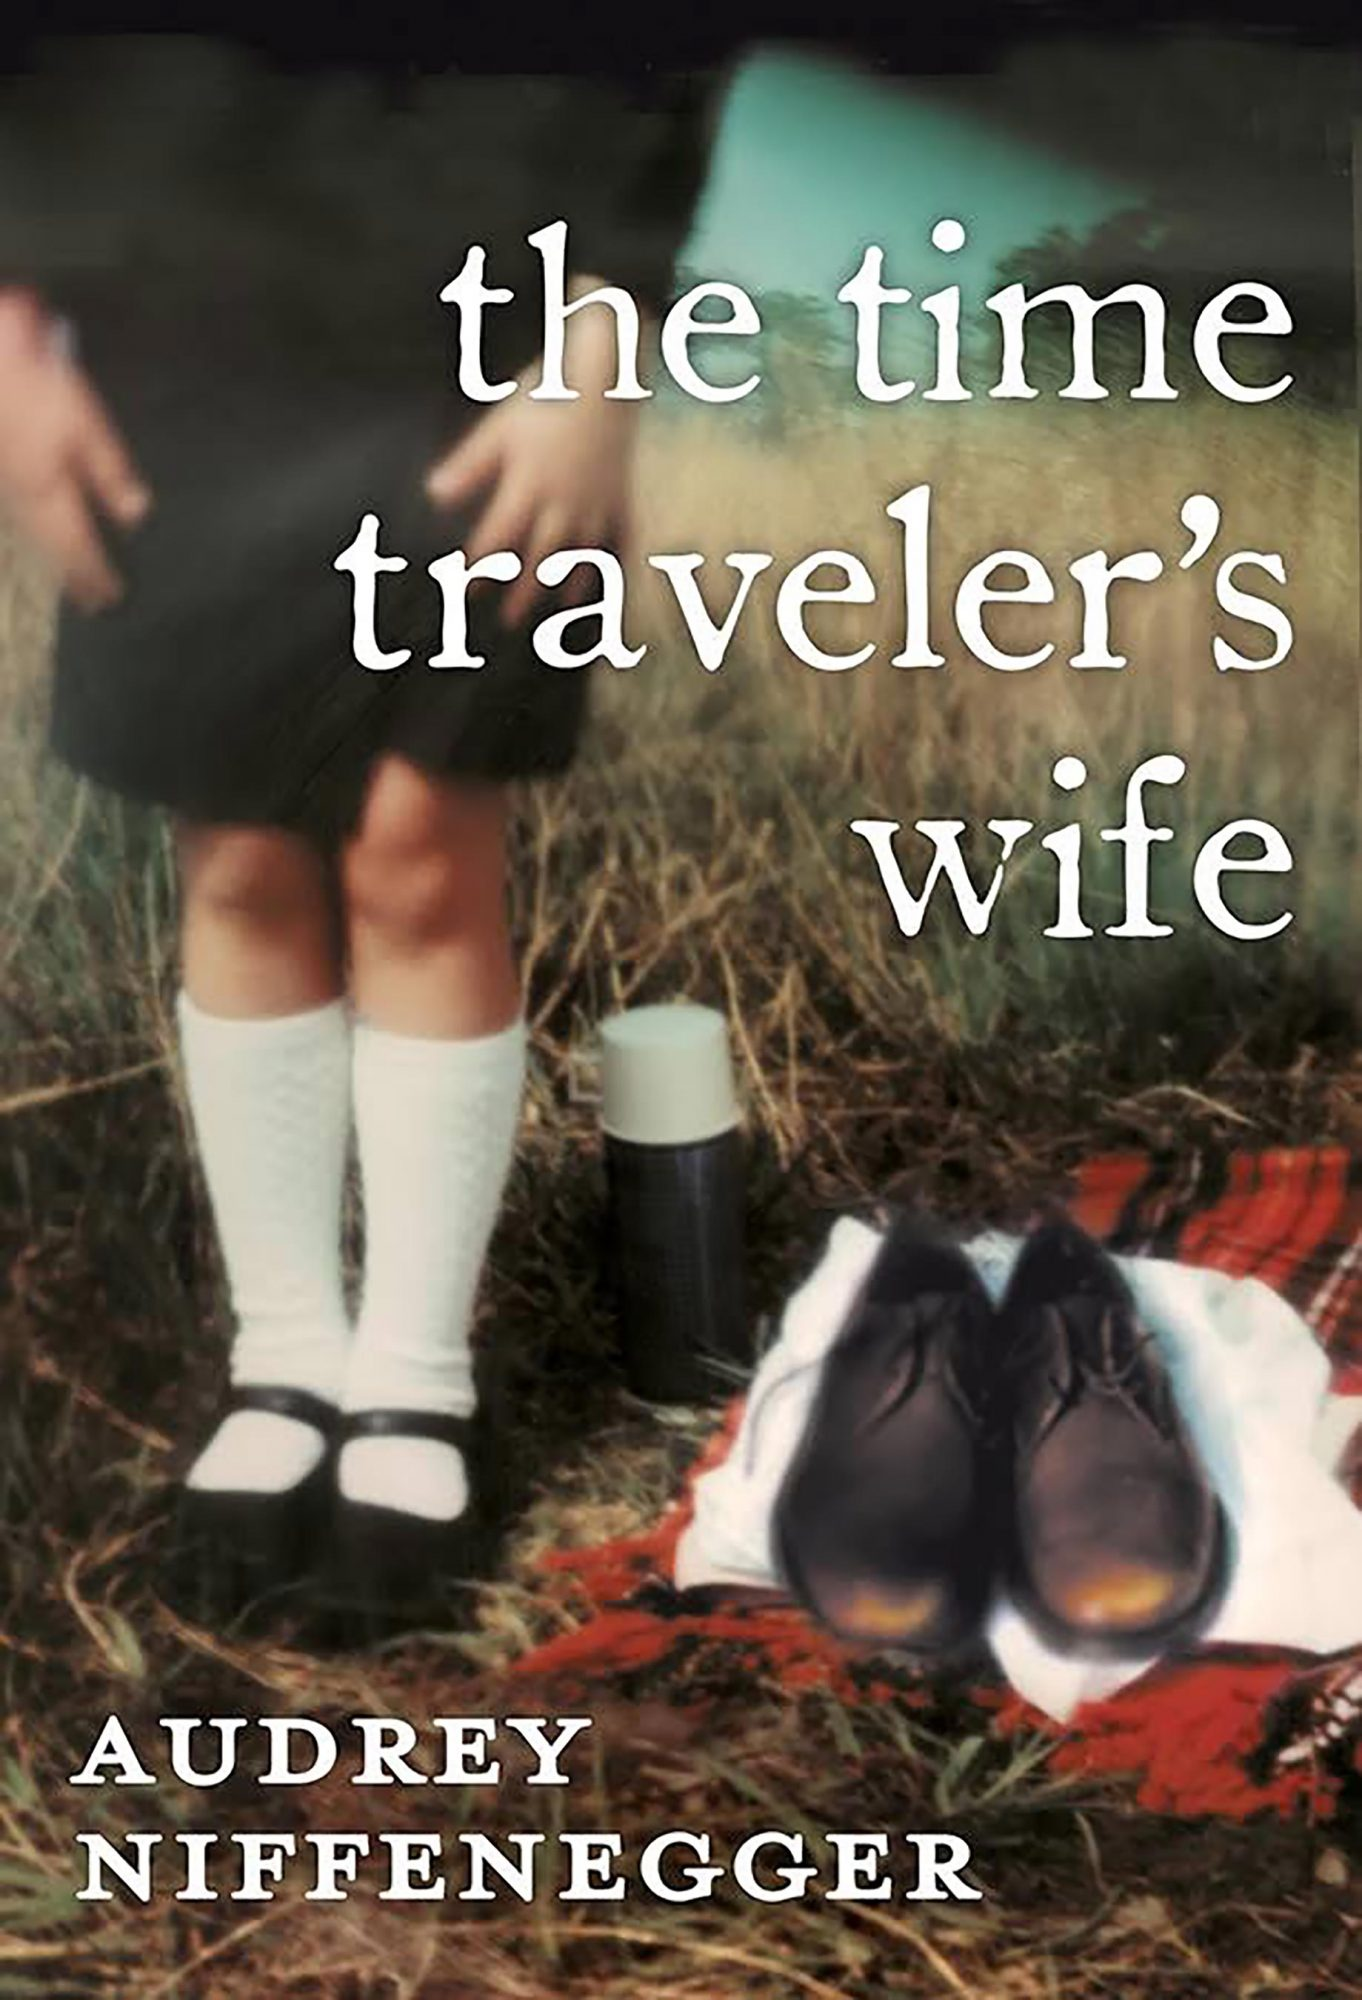 The Time Traveler's Wife by Audrey Niffenegger CR: Zola Books